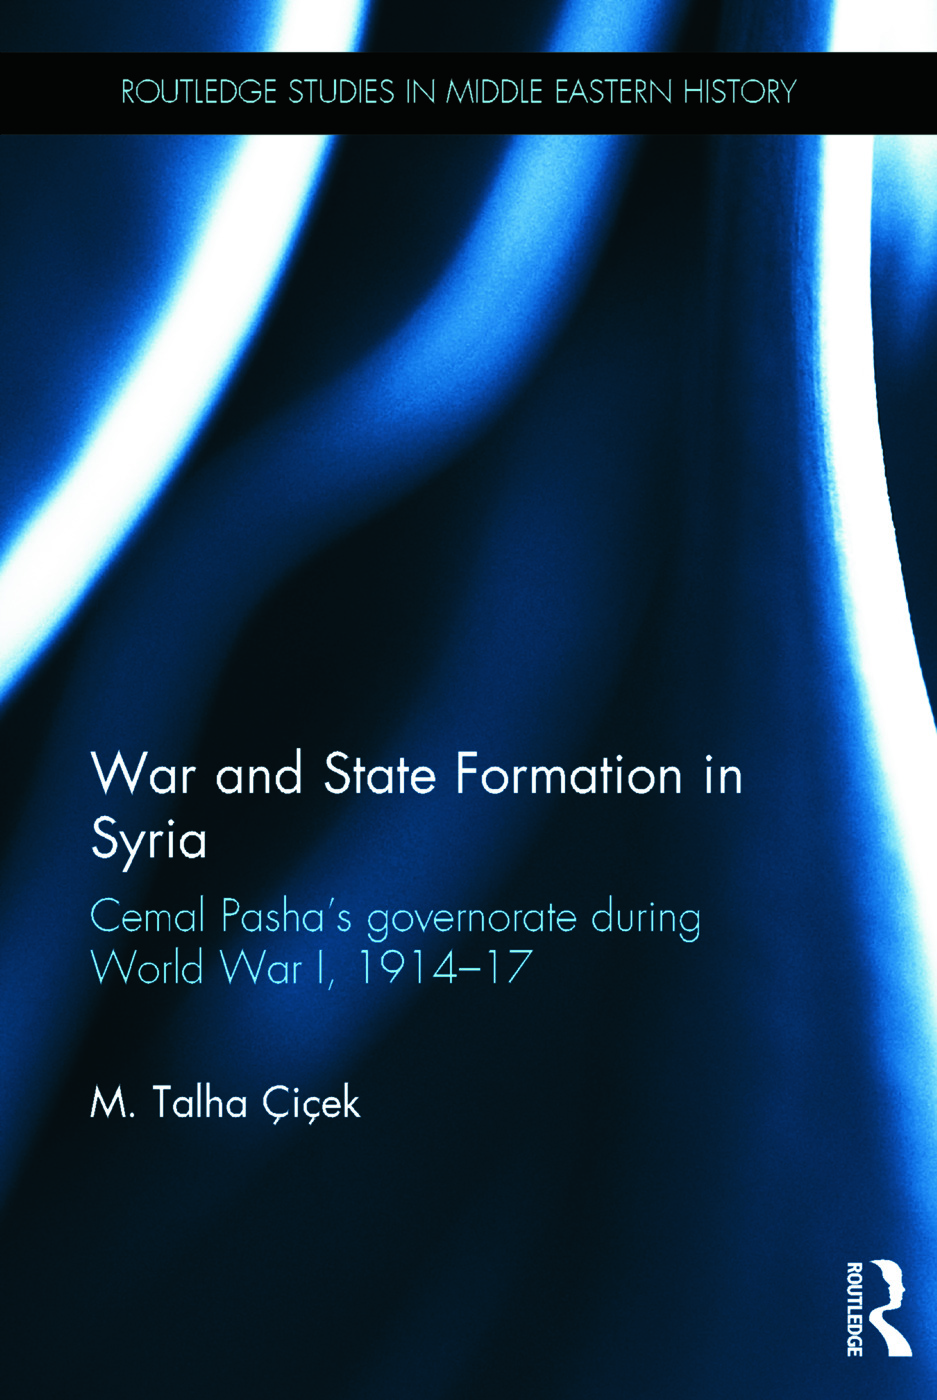 War and State Formation in Syria: Cemal Pasha's Governorate During World War I, 1914-1917 book cover